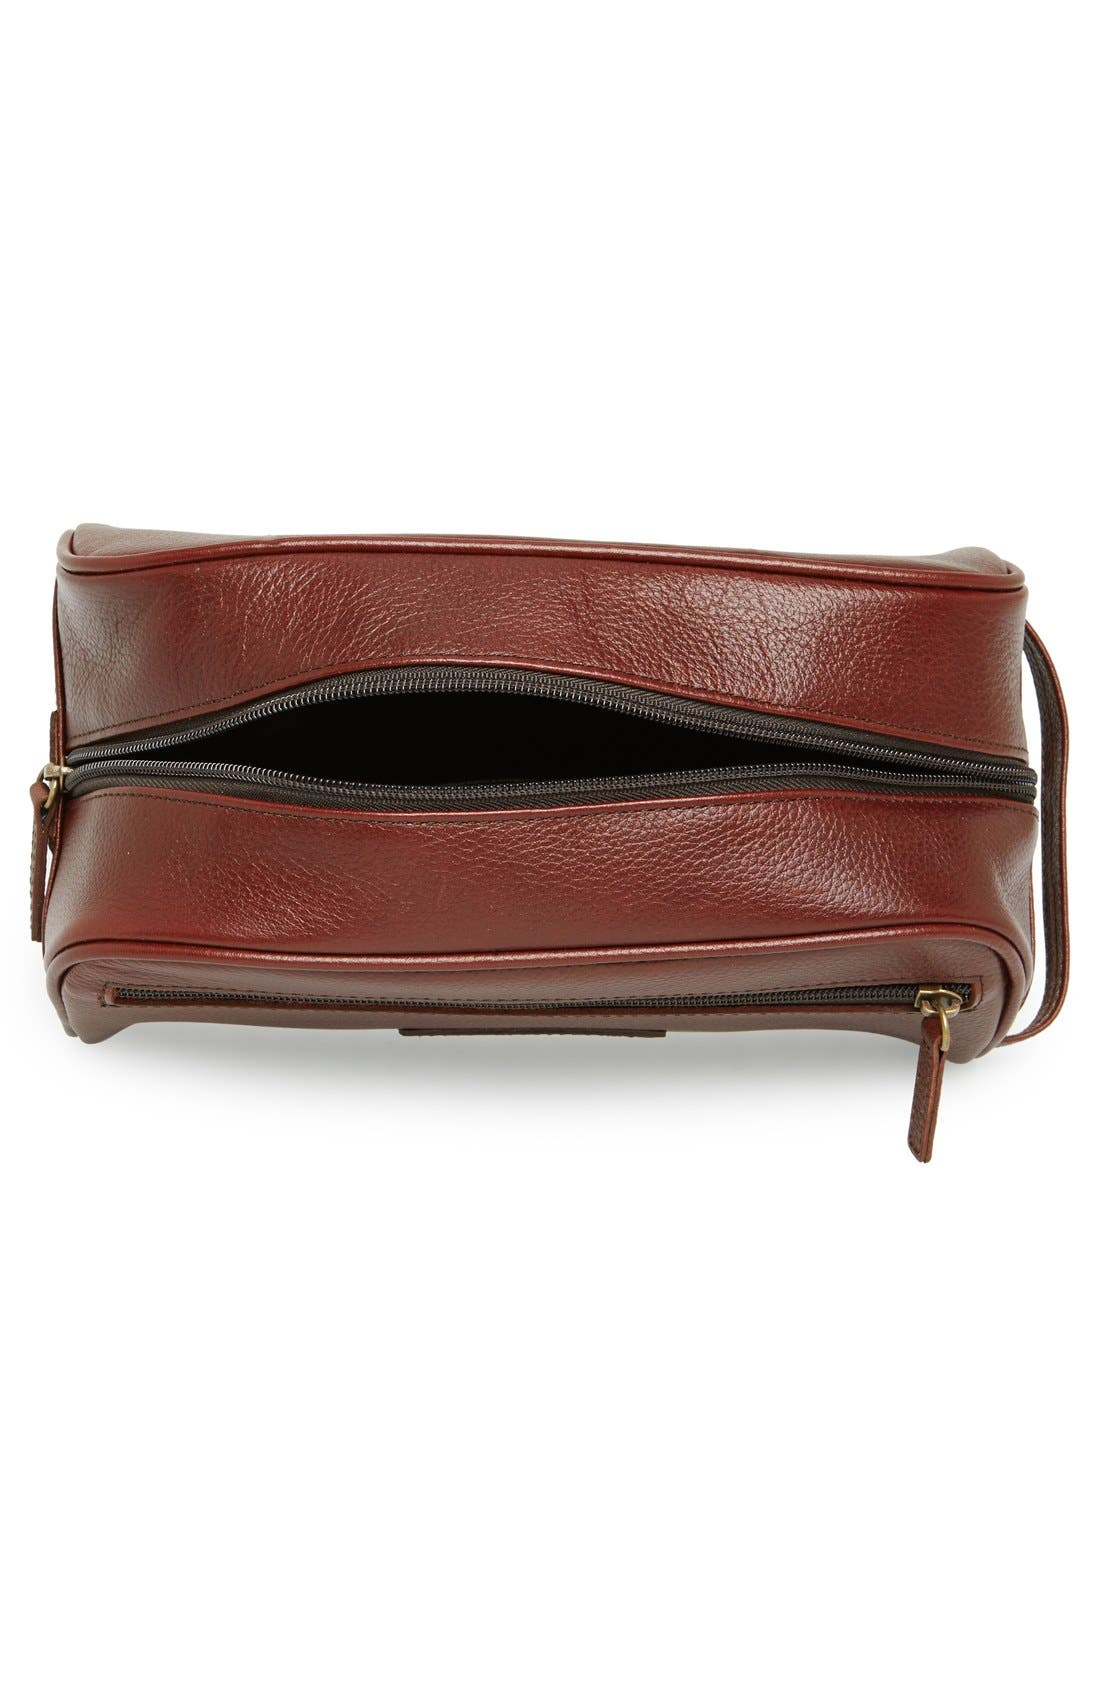 Leather Travel Kit,                             Alternate thumbnail 2, color,                             DARK BROWN